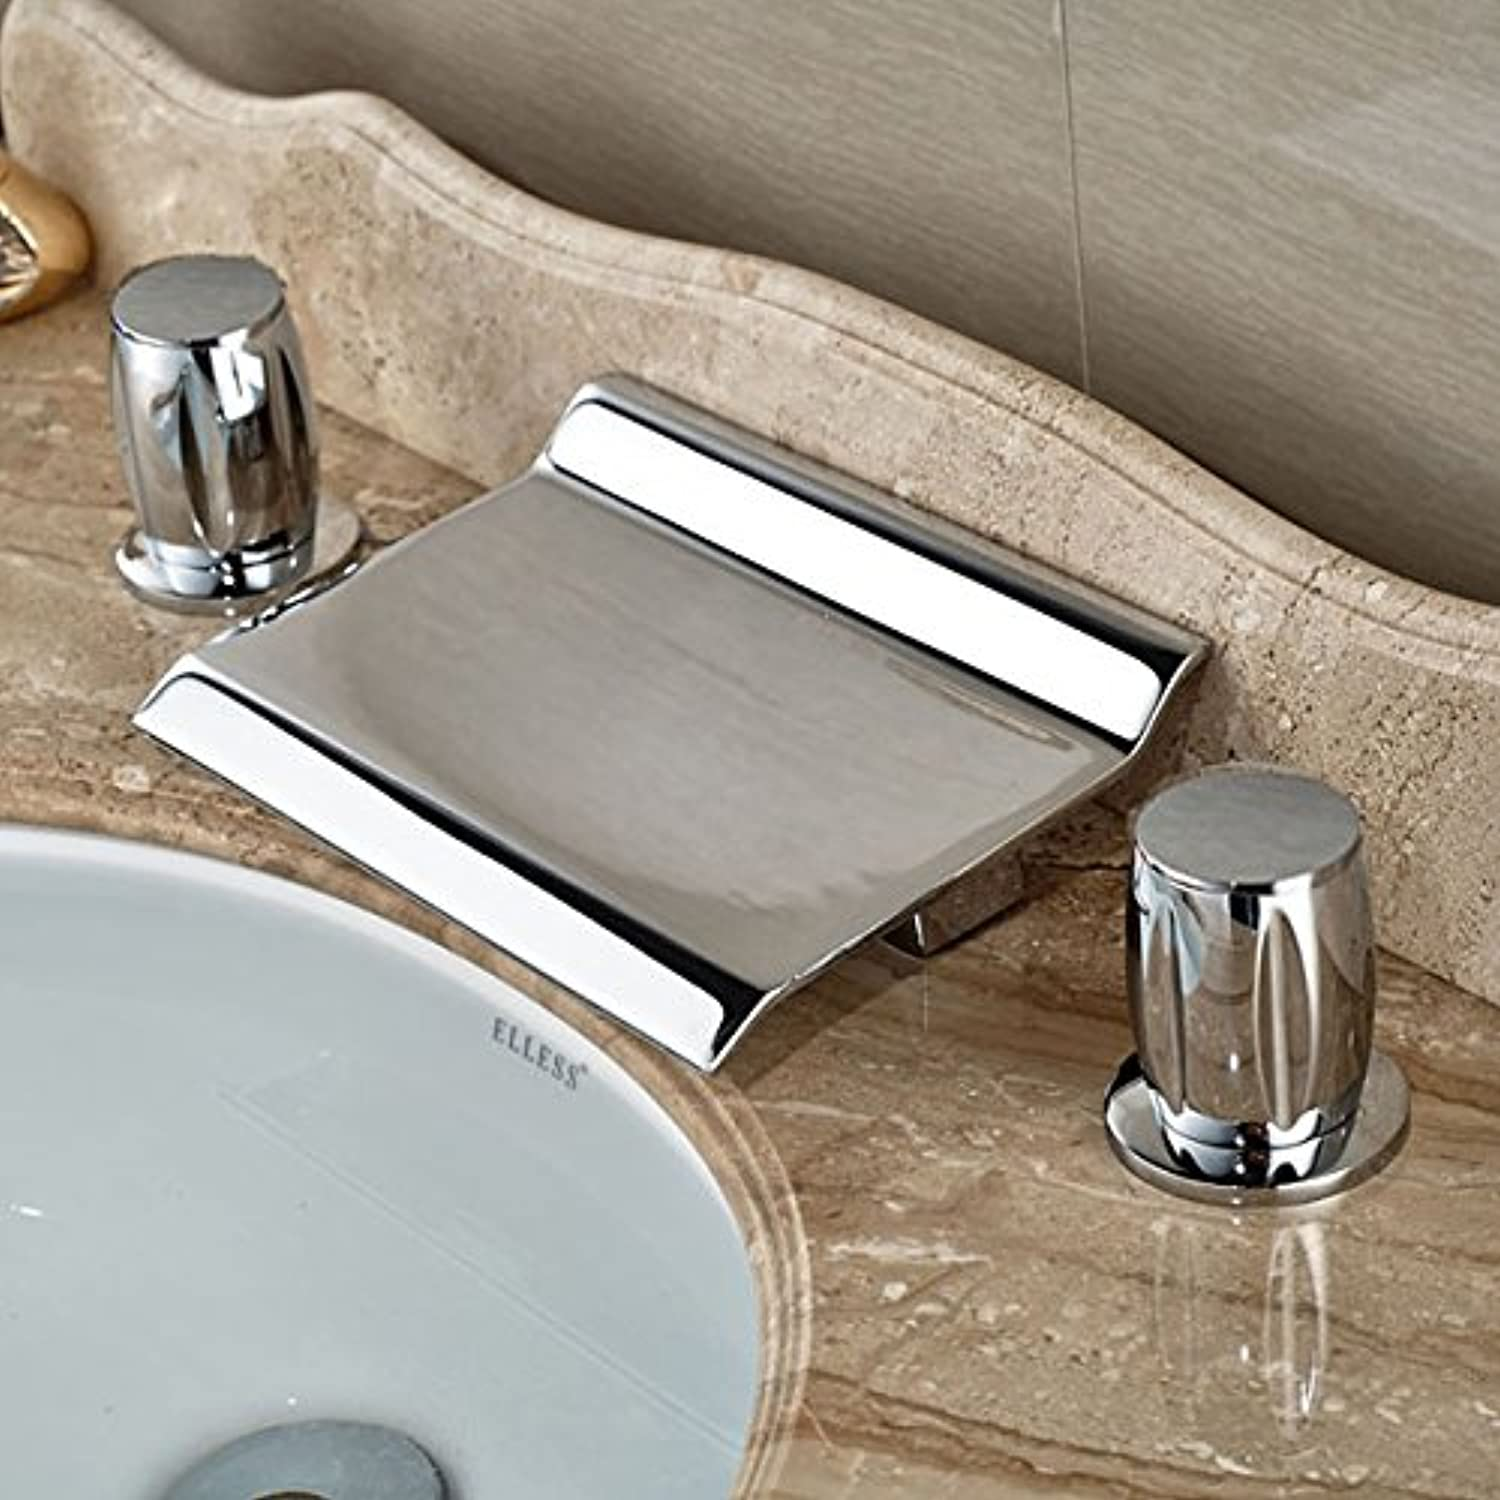 U-Enjoy Brass Widespread Arc-Shaped Top Quality Waterfall Faucet Deck Mount 3 Holes Wash Mixer Taps Two Handle (Style 1)